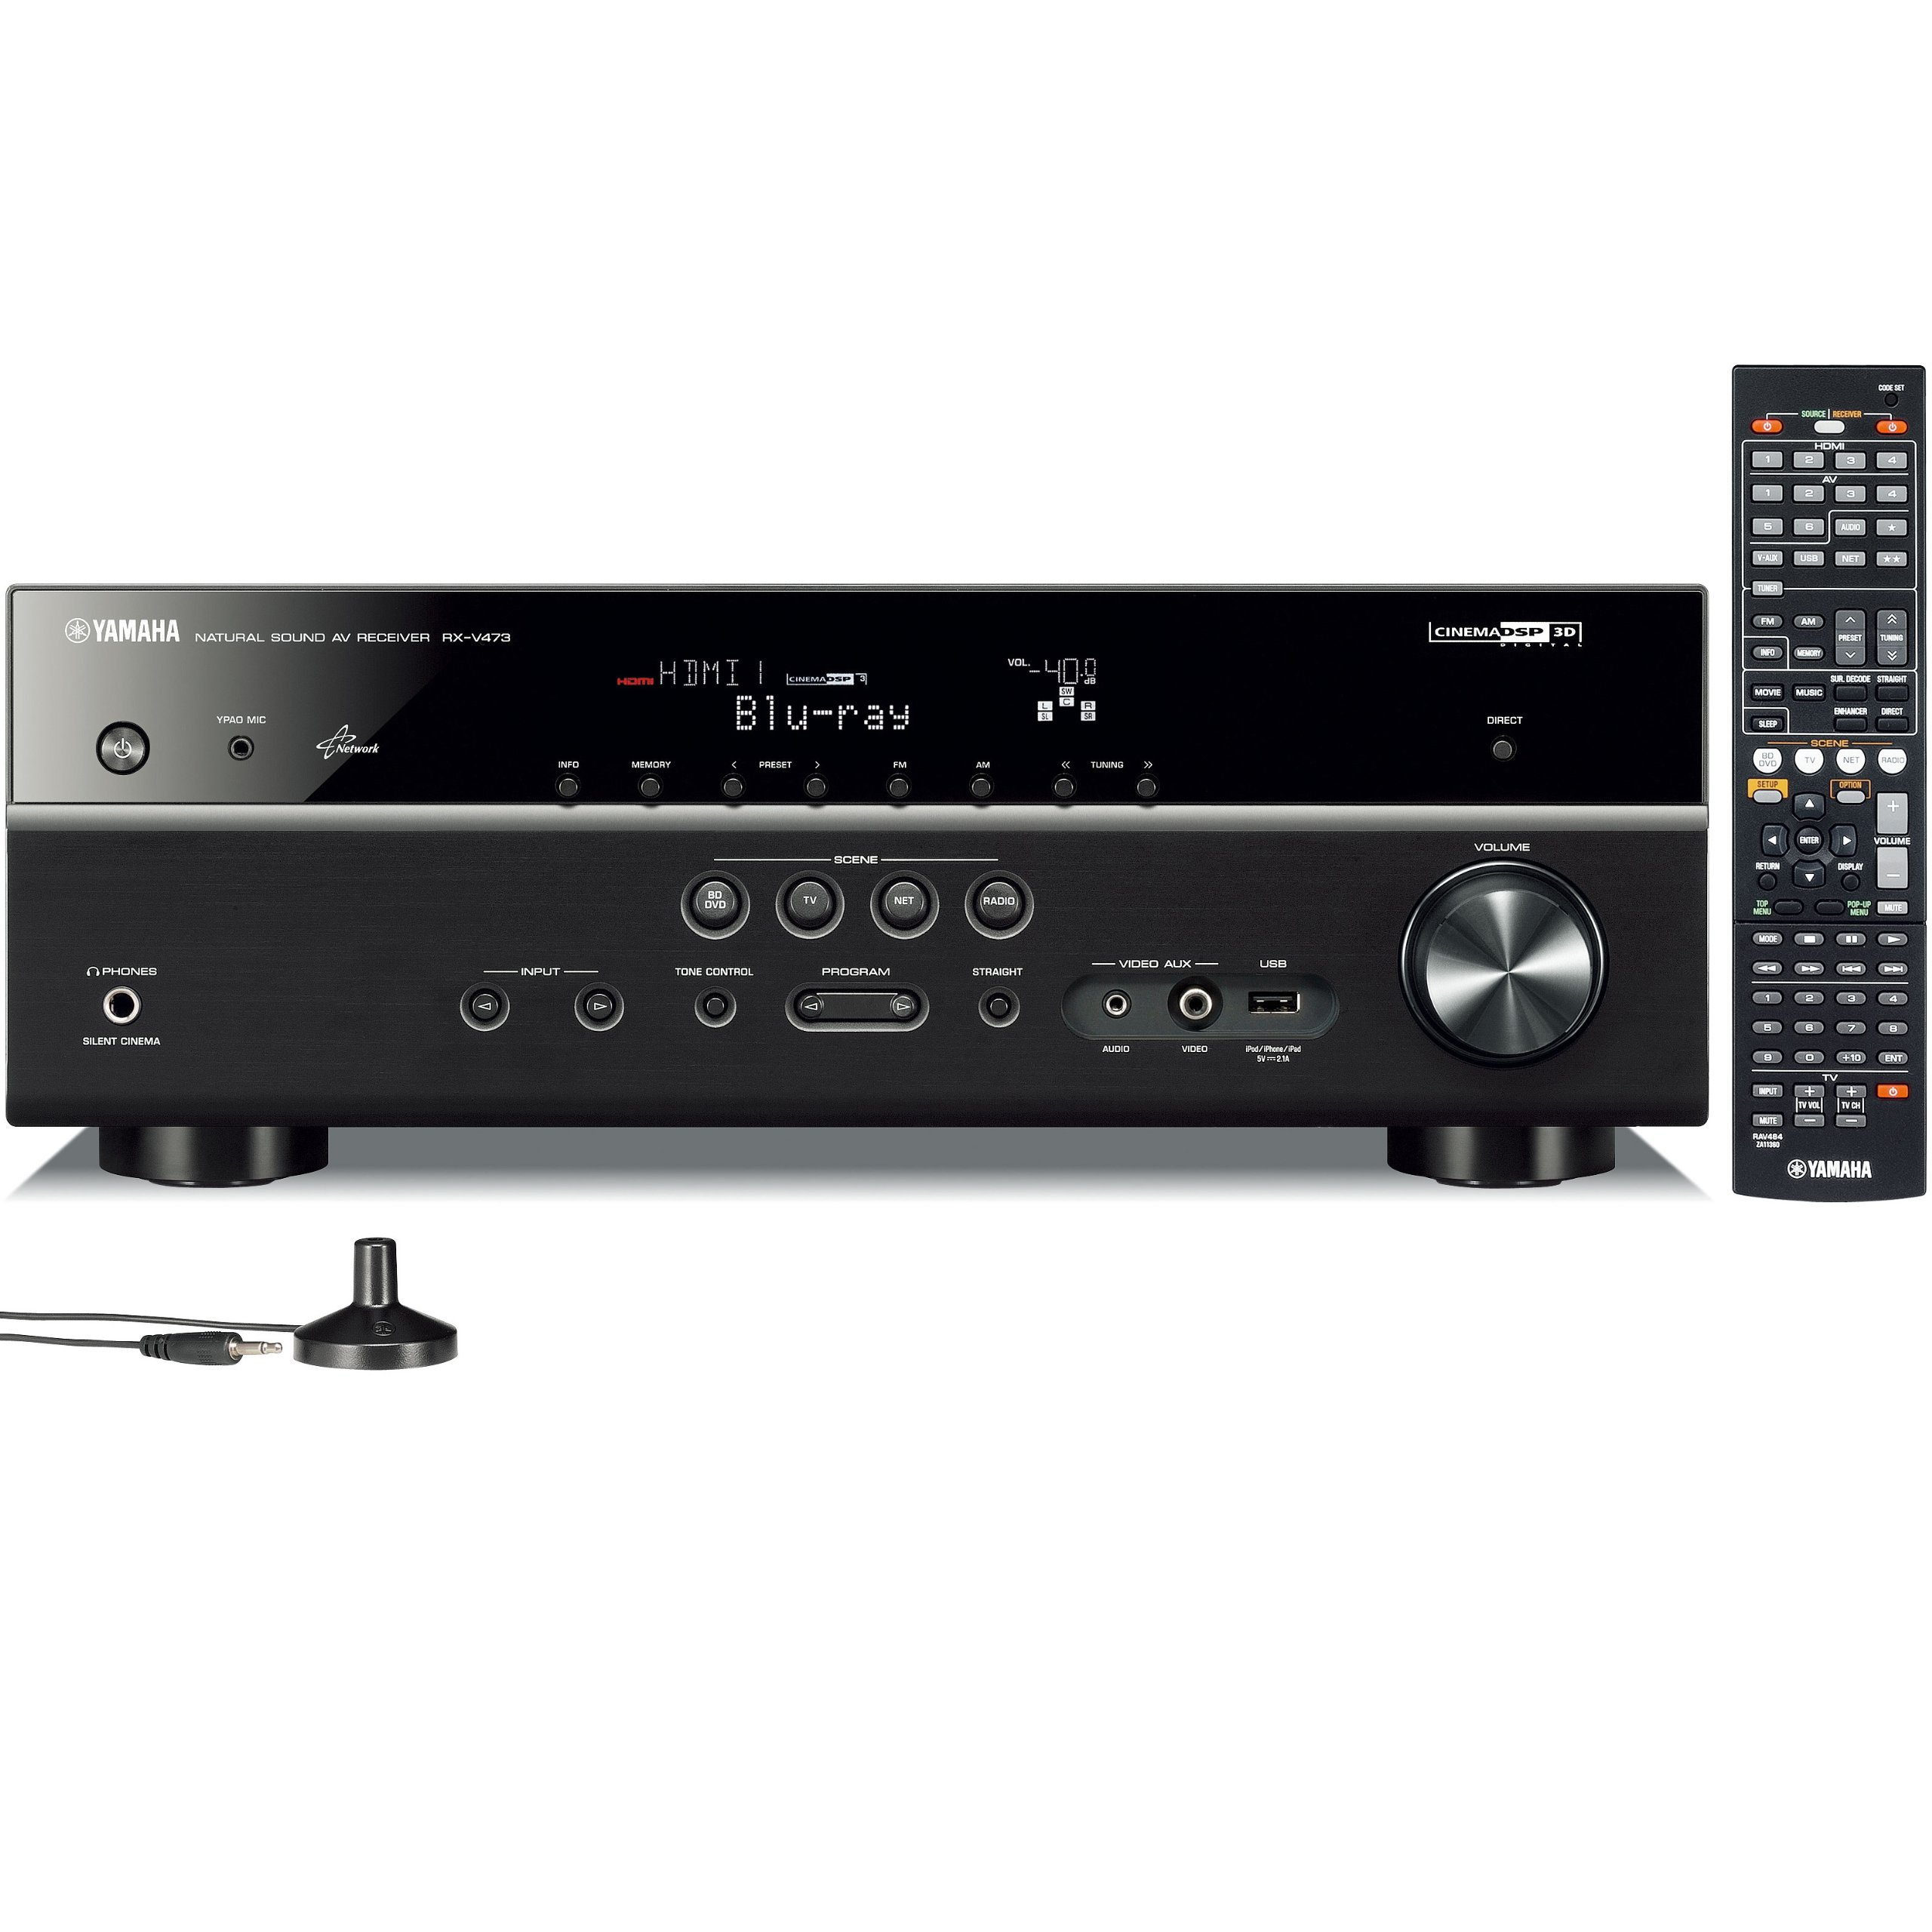 Yamaha RX-V473 5.1- Channel Network AV Receiver (Discontinued by Manufacturer) by Yamaha